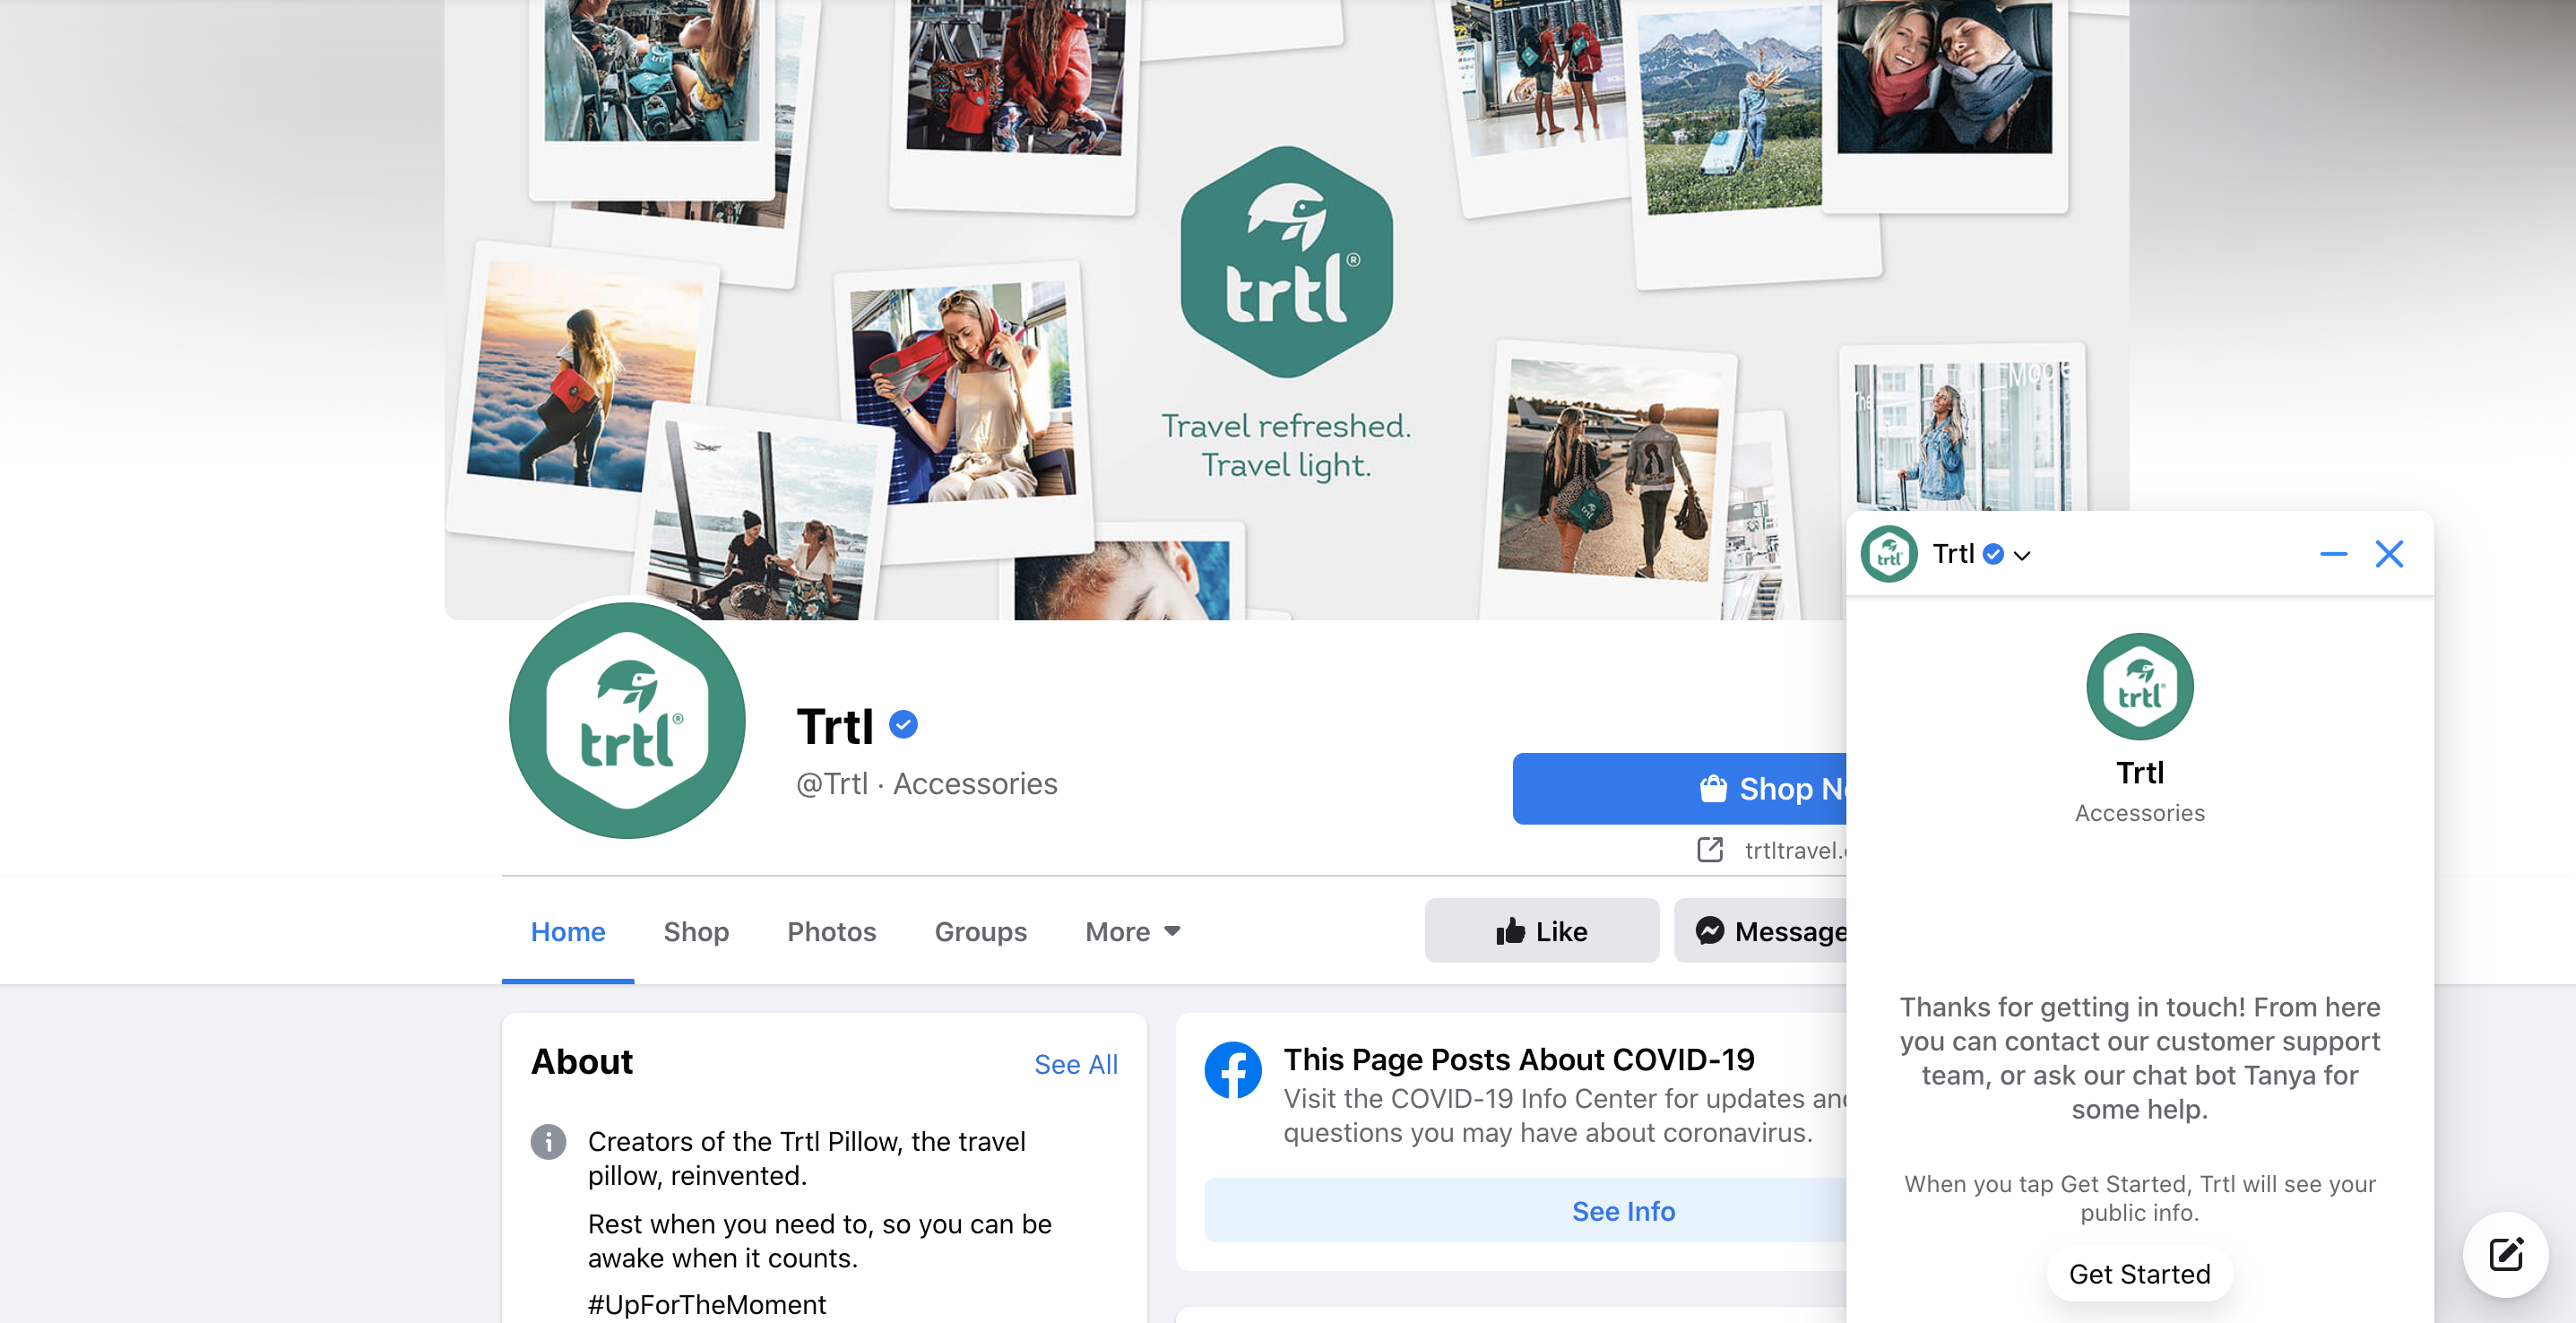 Trtl's Facebook Page and its Messenger chatbot